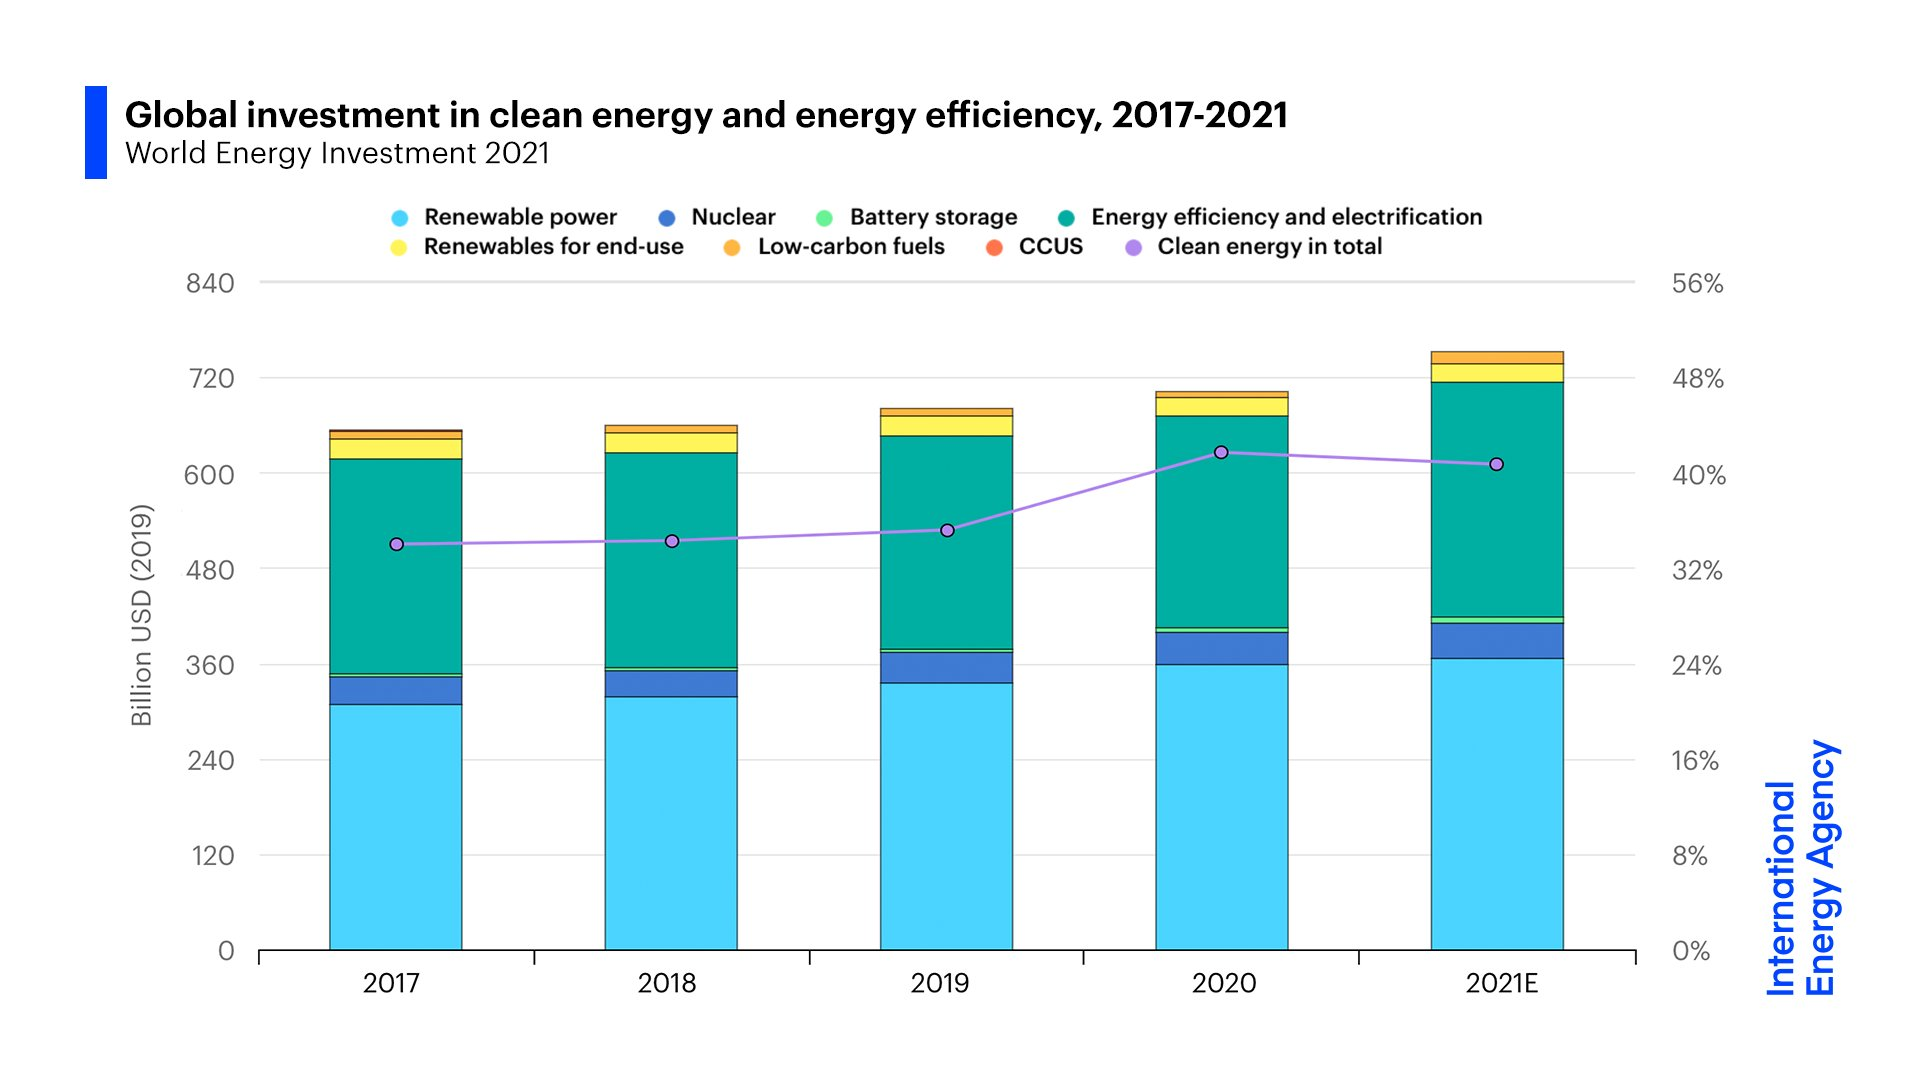 Global investment in energy is rising, offering investment opportunities in infrastructure and clean energy tech